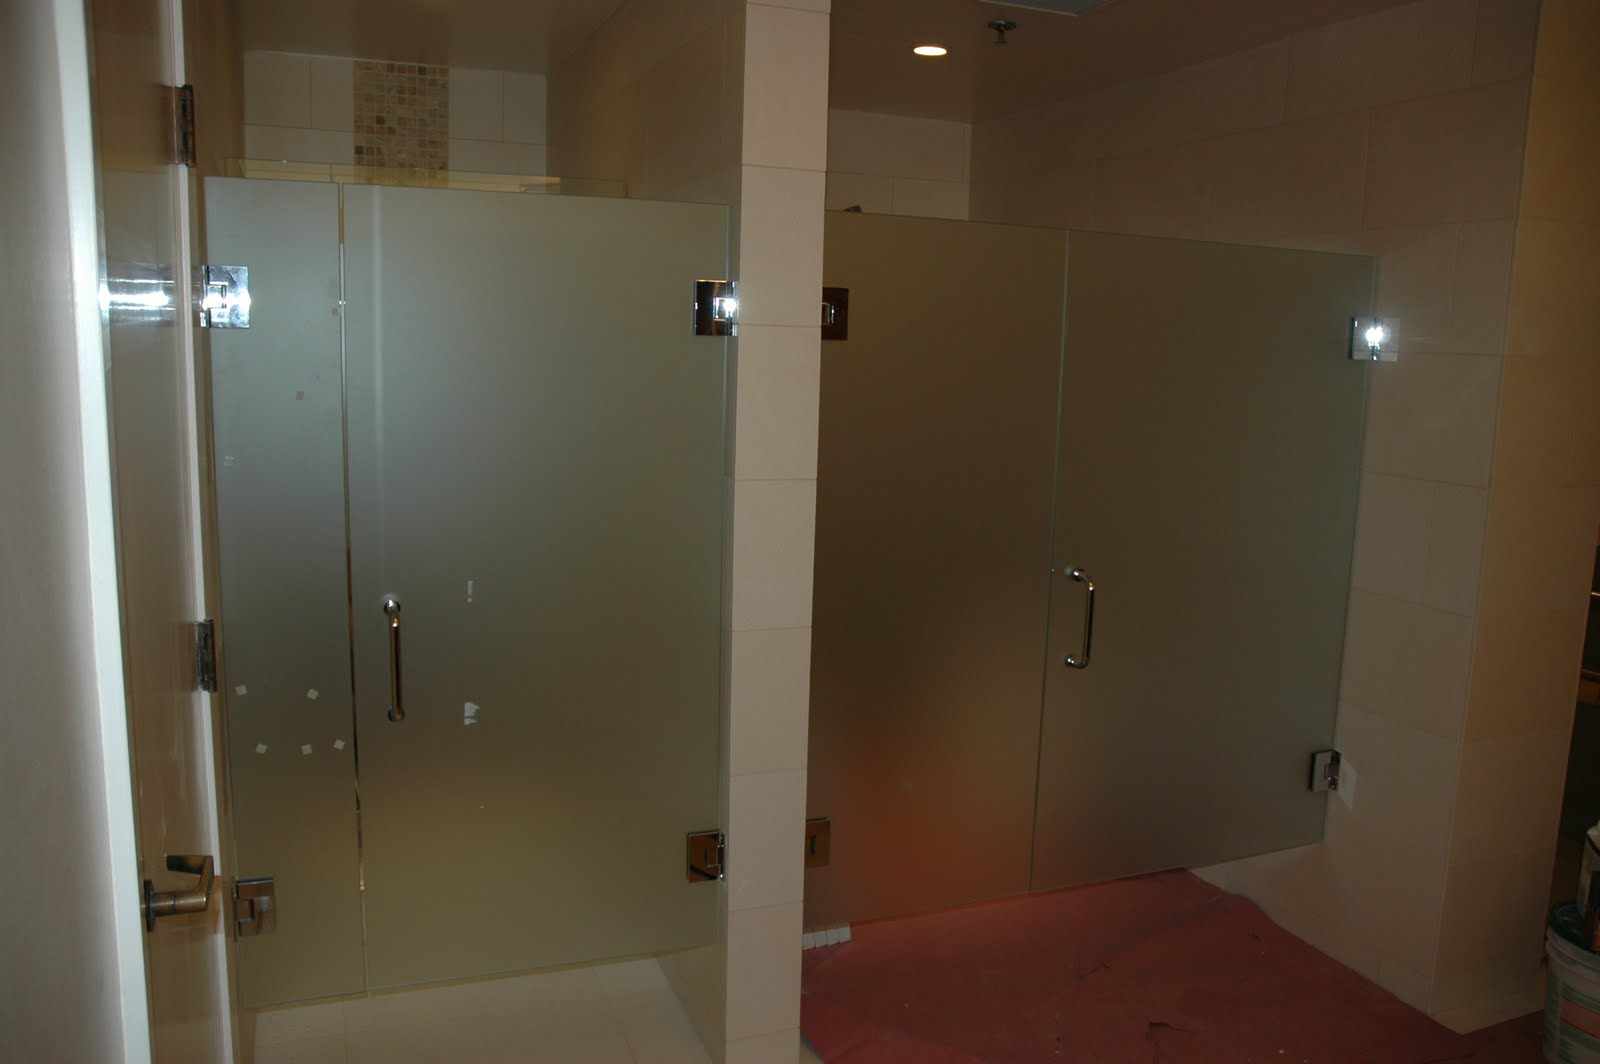 Custom Shower Doors in Spa, with Hardware and Satin Etch Glass